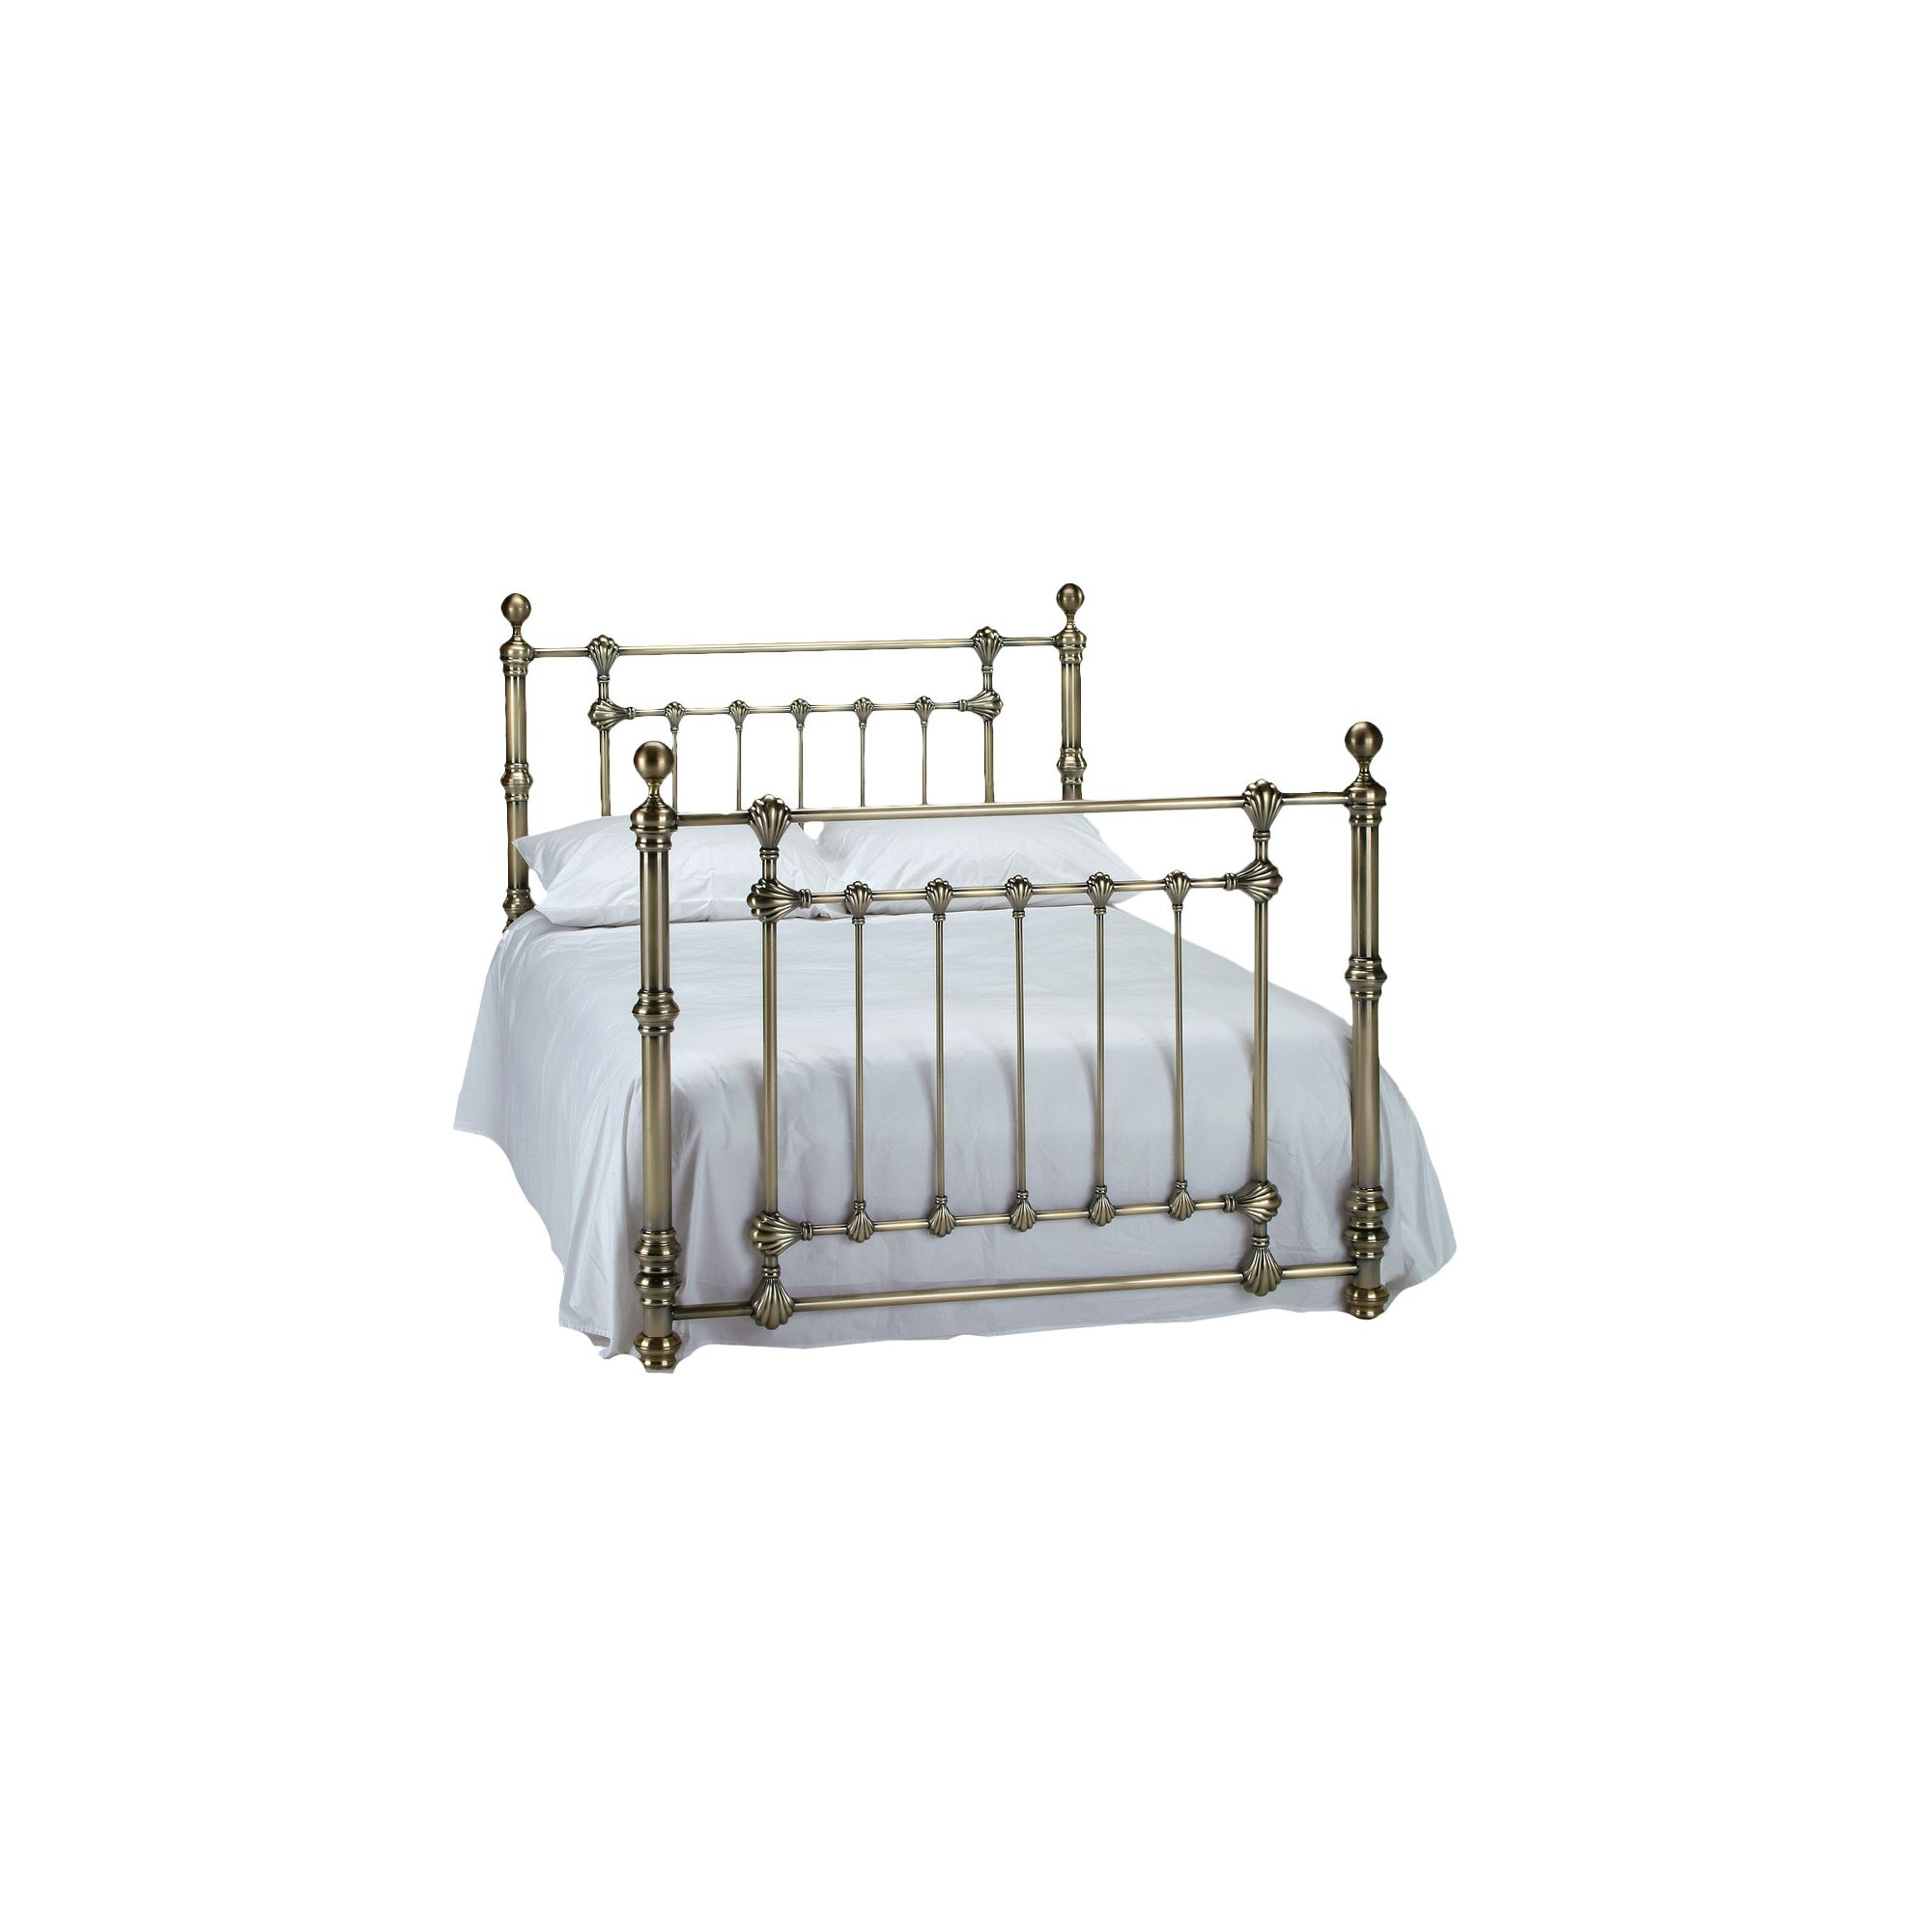 Interiors 2 suit Victoria Bedframe - King at Tesco Direct